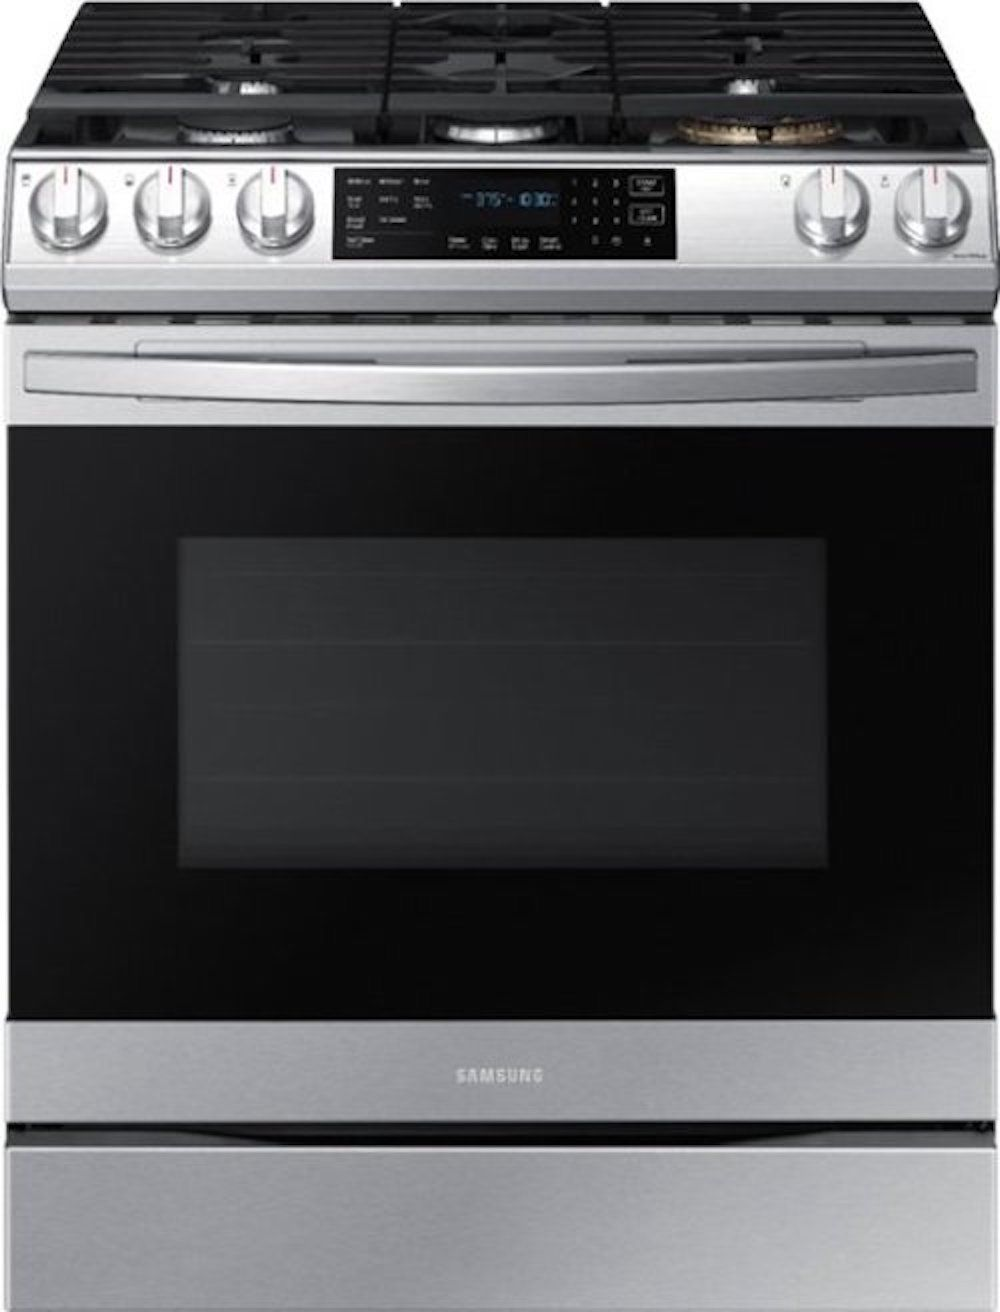 The Samsung NX60T8511SS 30 in. 6.0 cu. ft. Slide-In Gas Range has a built-in air fryer and can connect to the Internet.